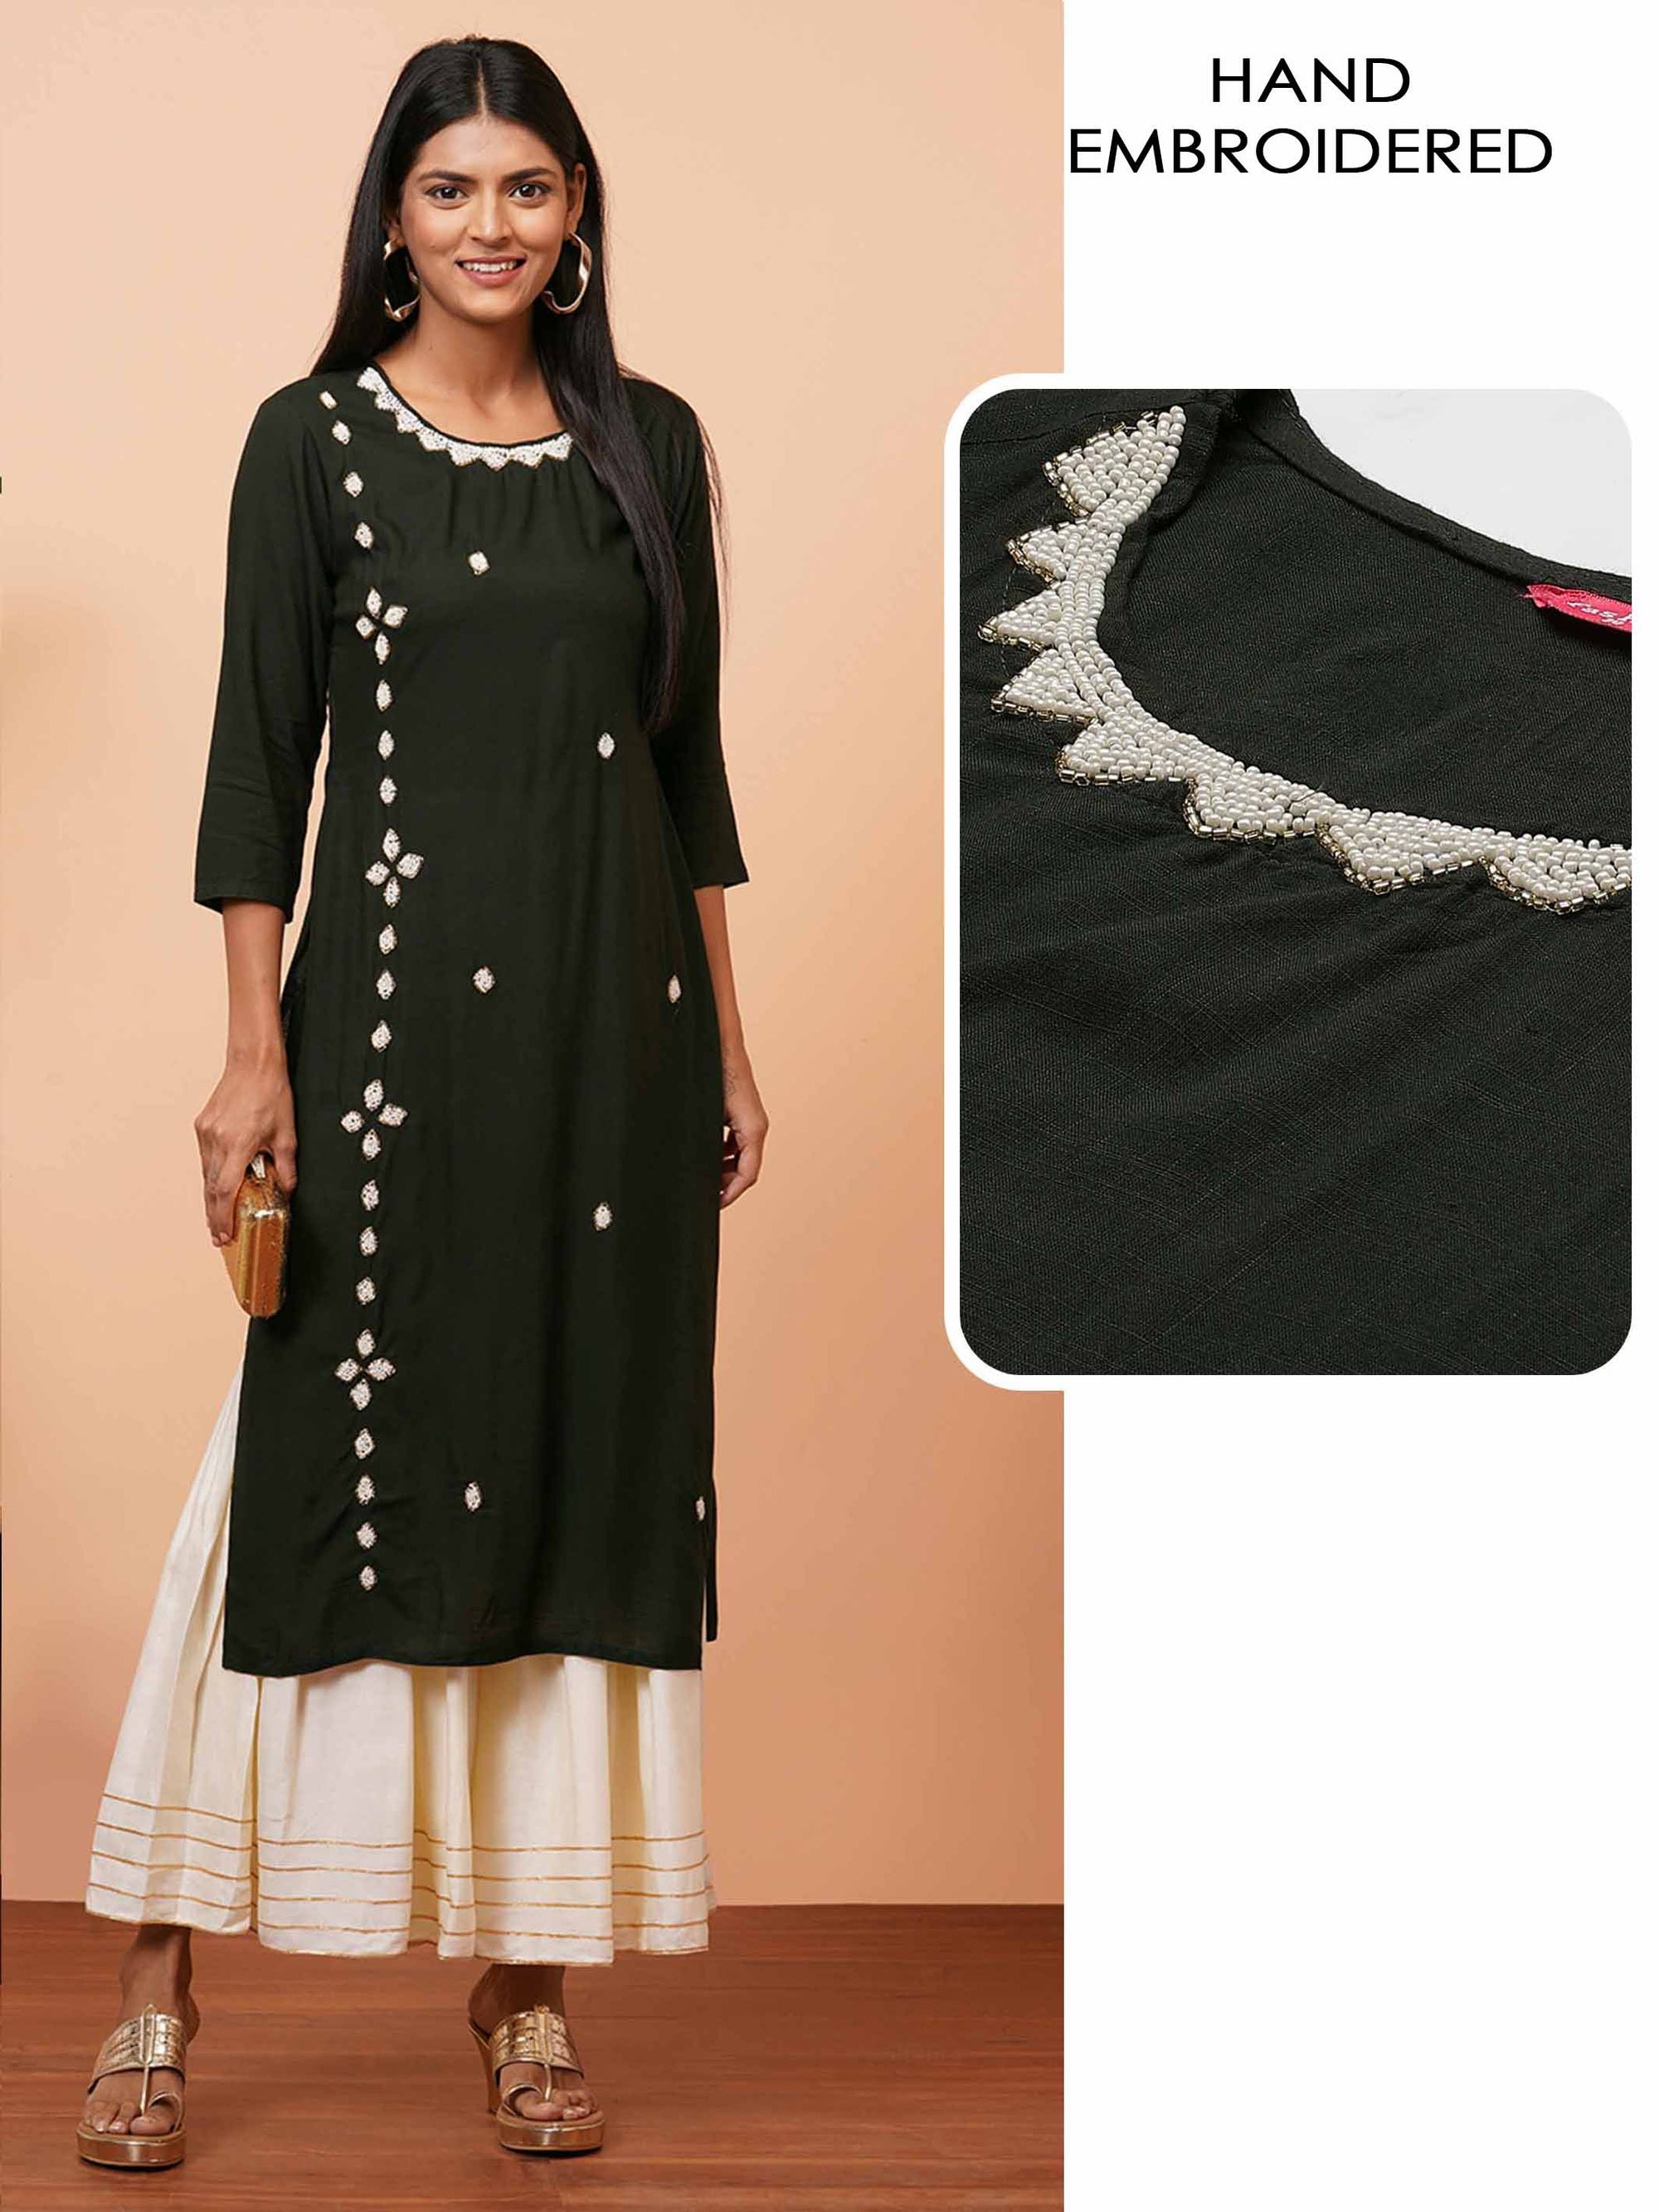 White Beads Hand Embroidered Straight Kurta - Emerald Green